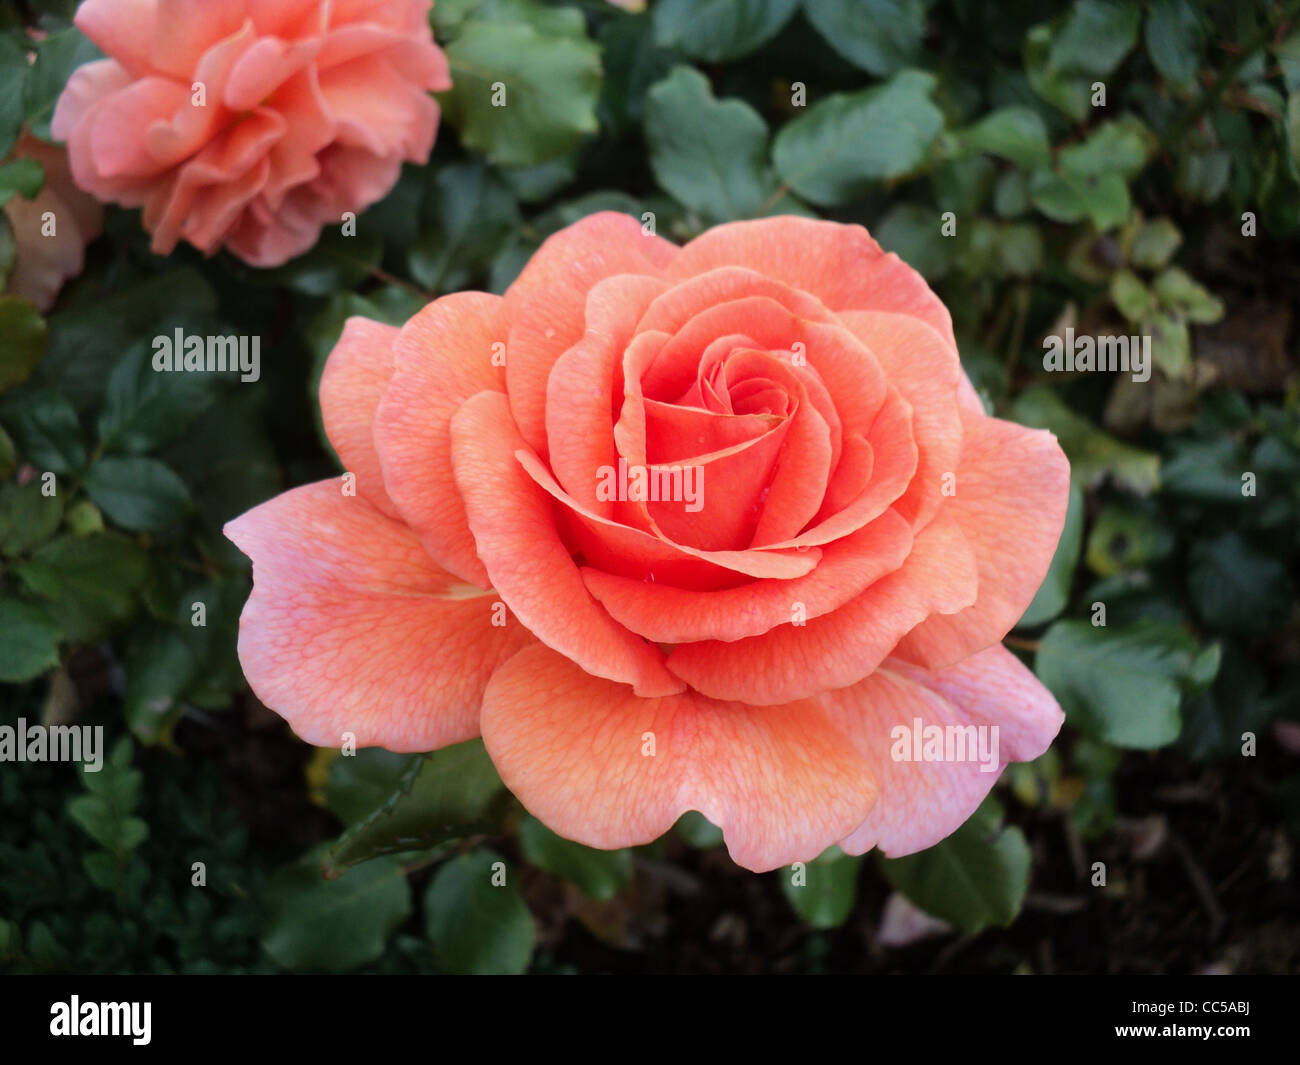 lovely roses stock photos & lovely roses stock images - alamy